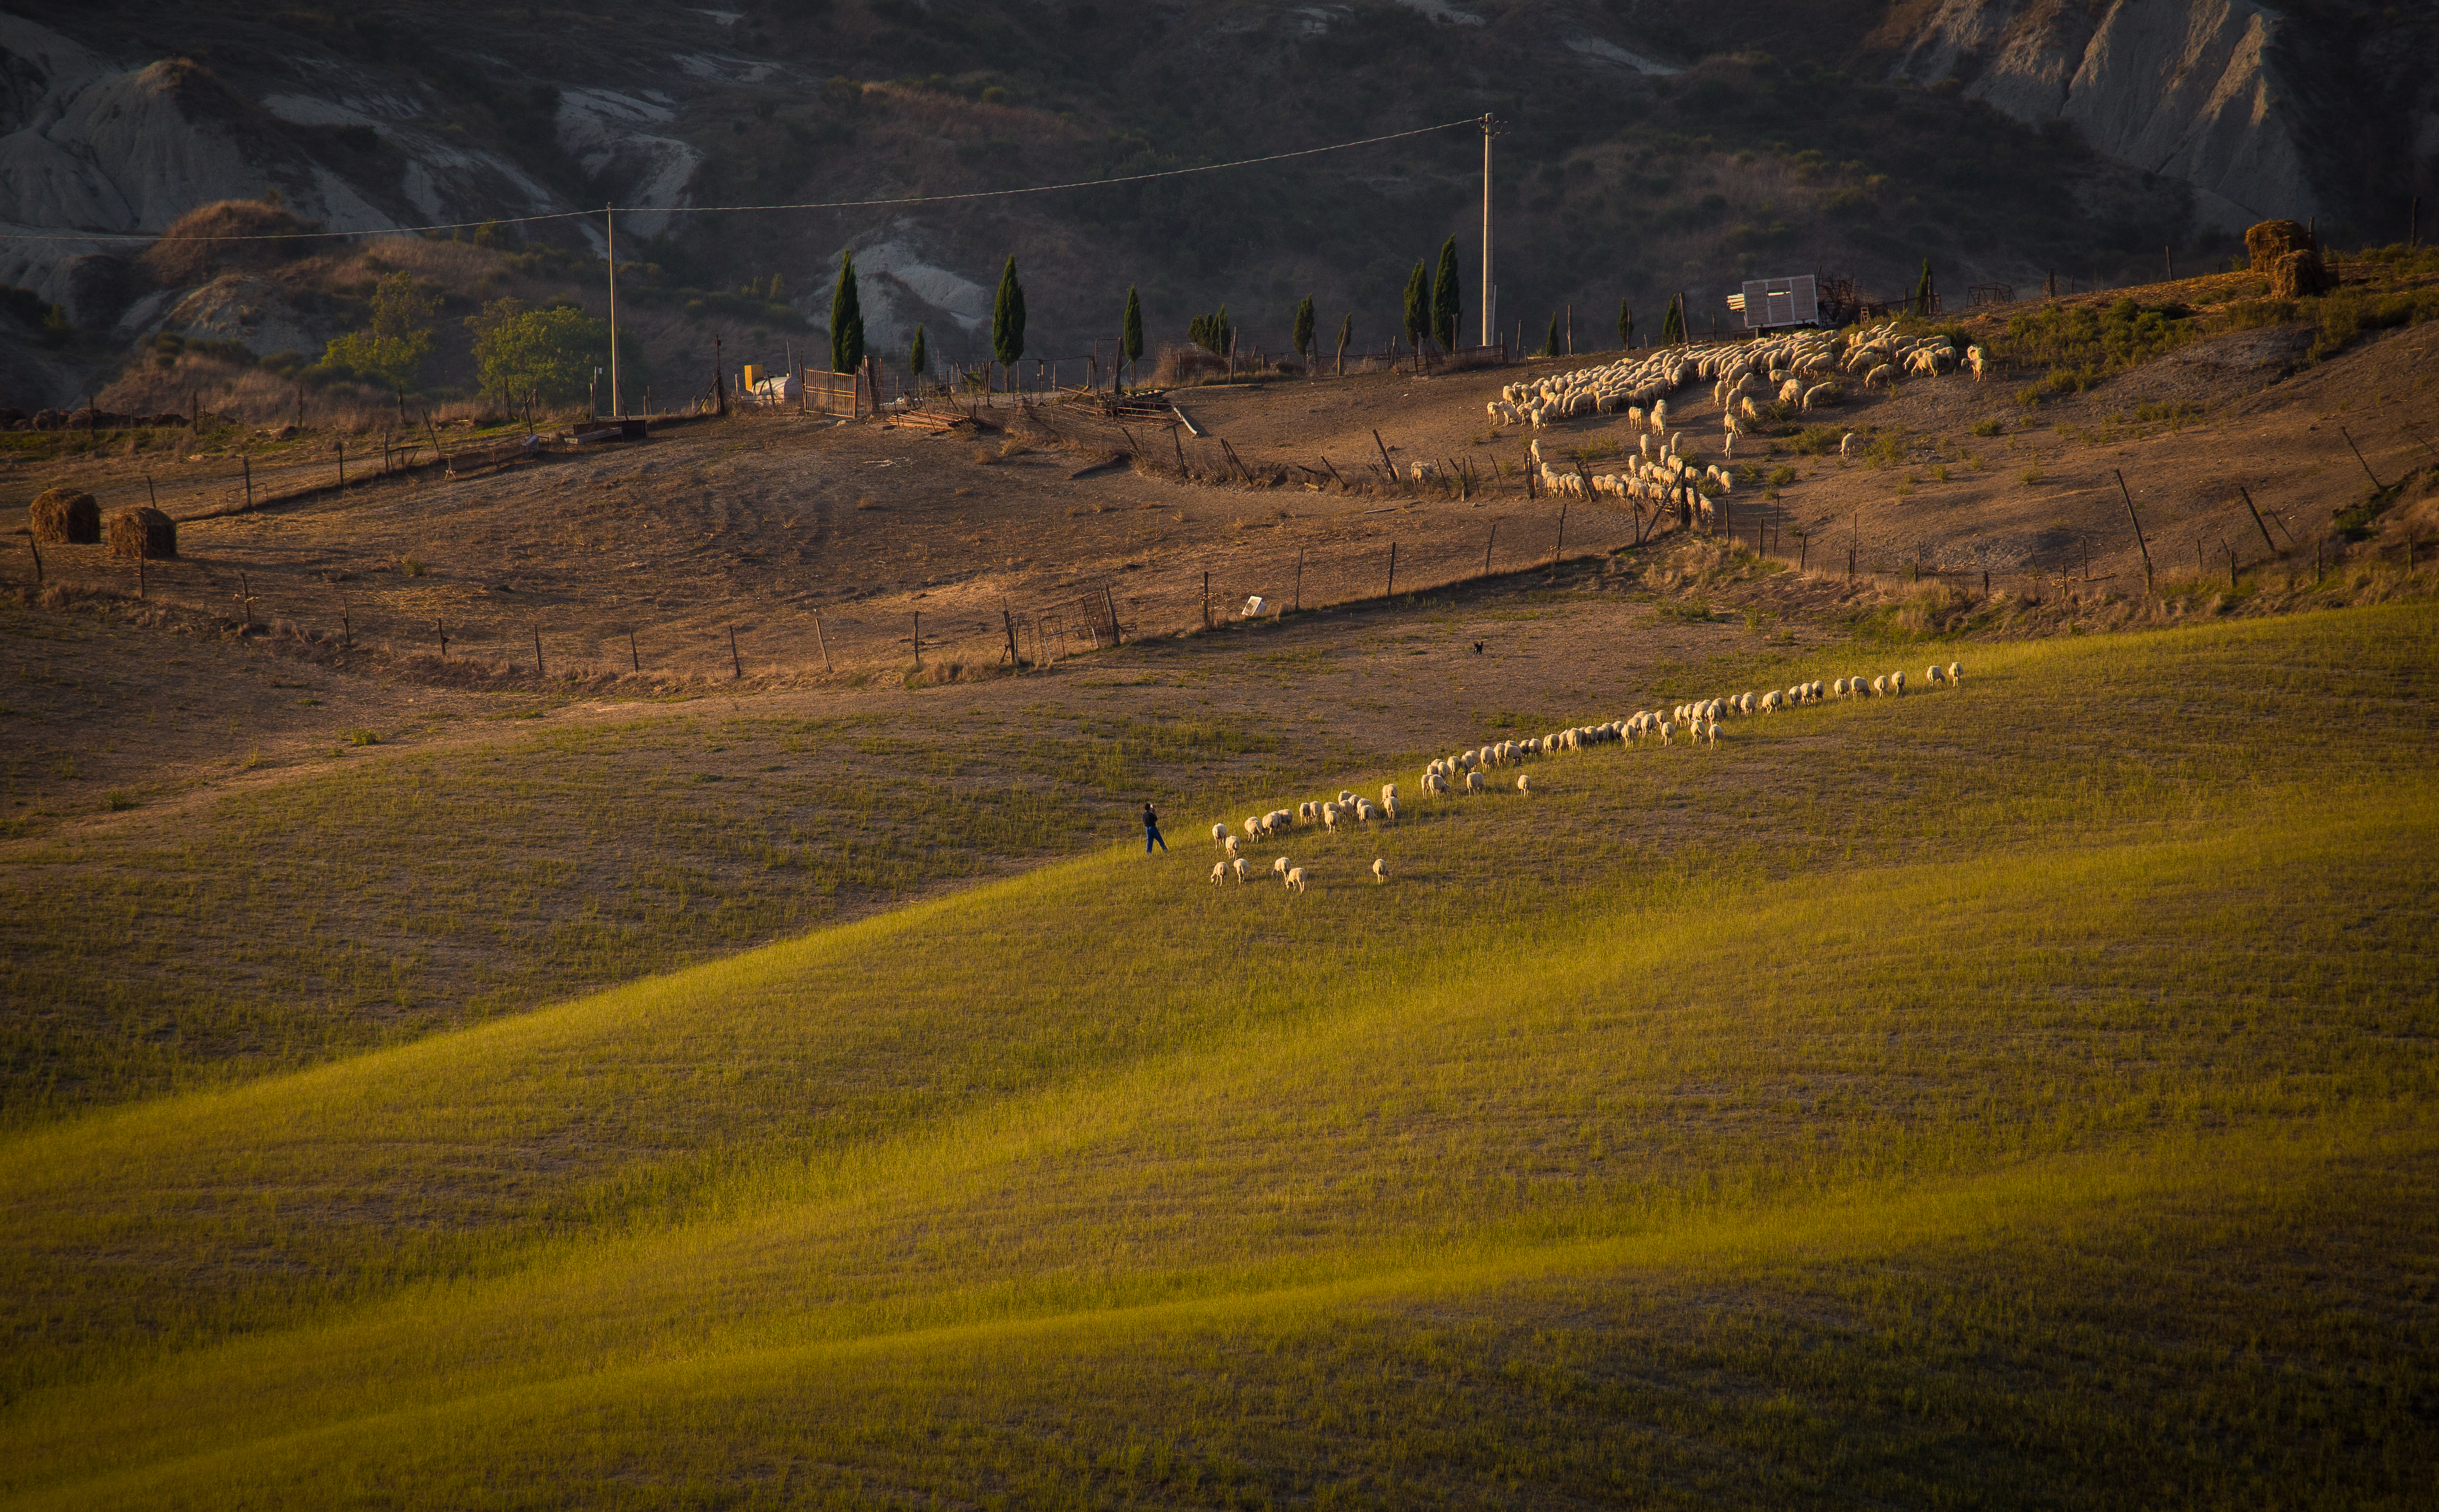 Tuscany and Sheep